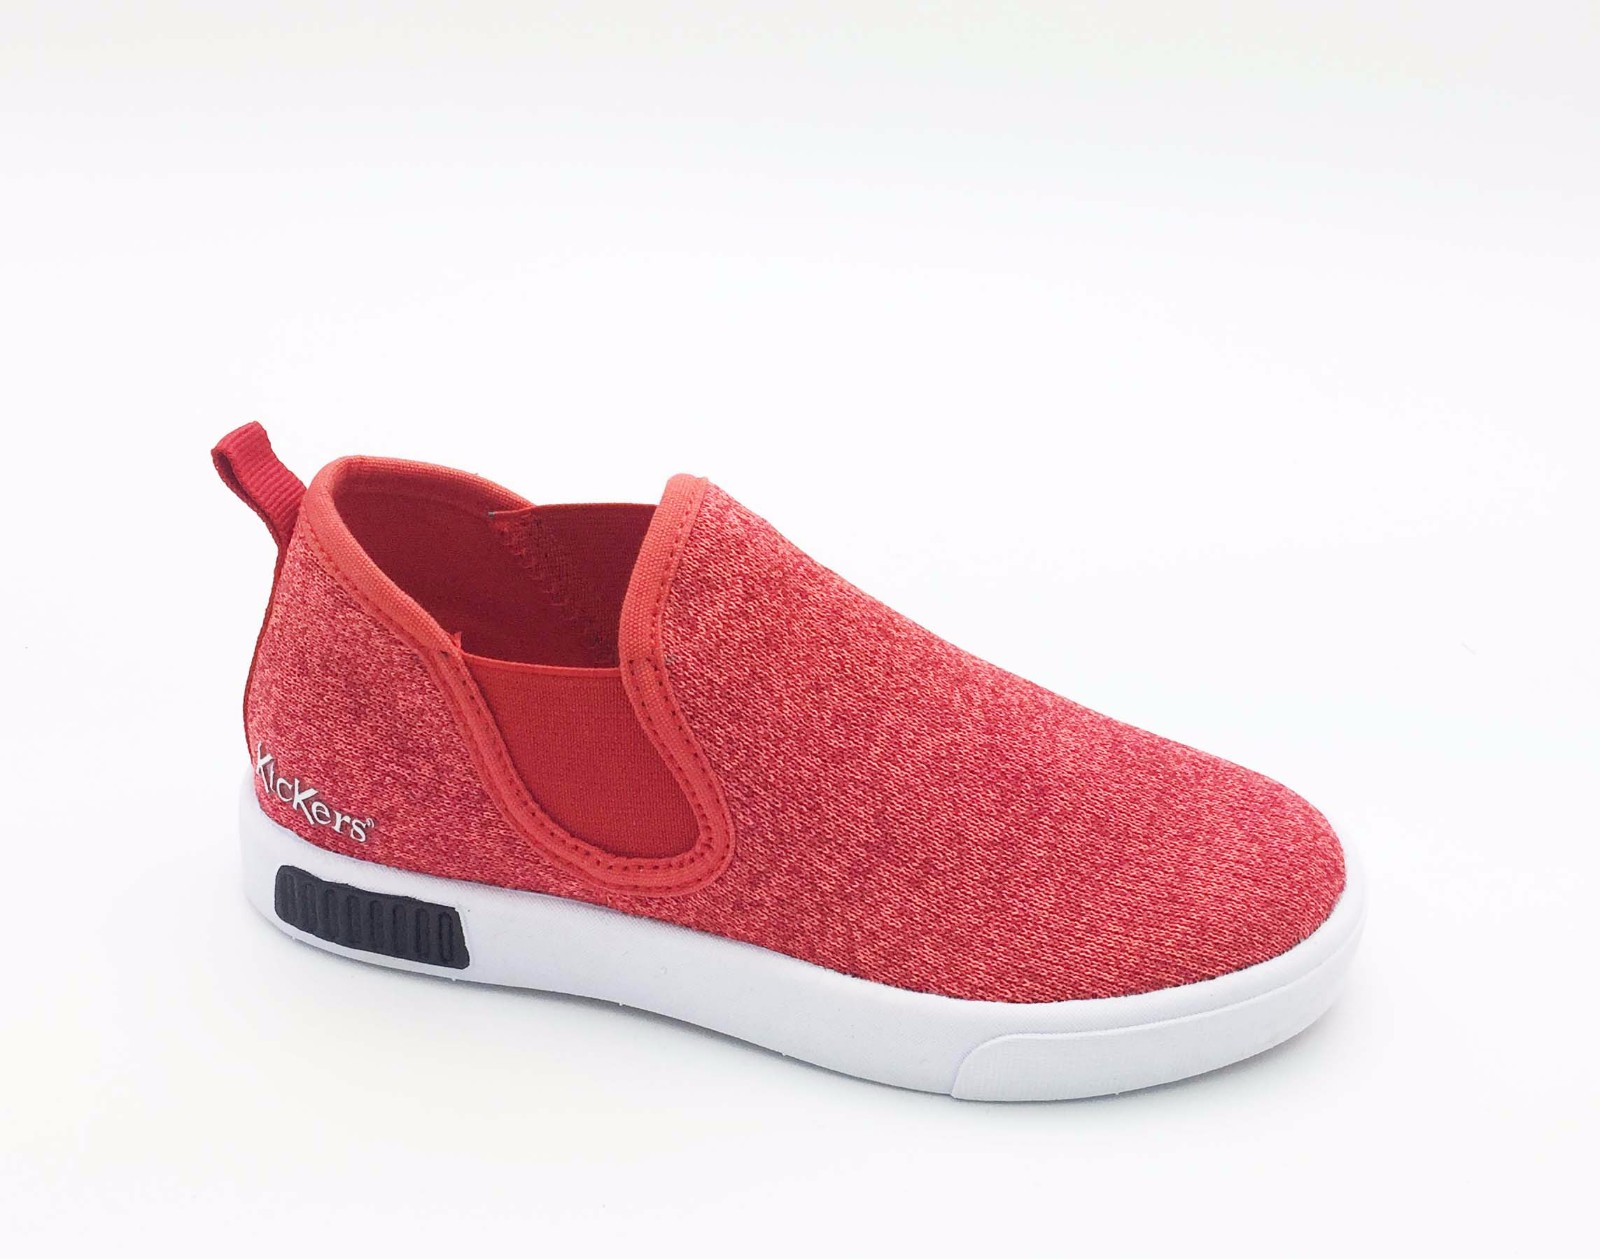 High quality Flyknit Shoes Loafers Girls Boys Sneakers Toddlers Children Flats Quotes,China Flyknit Shoes Loafers Girls Boys Sneakers Toddlers Children Flats Factory,Flyknit Shoes Loafers Girls Boys Sneakers Toddlers Children Flats Purchasing